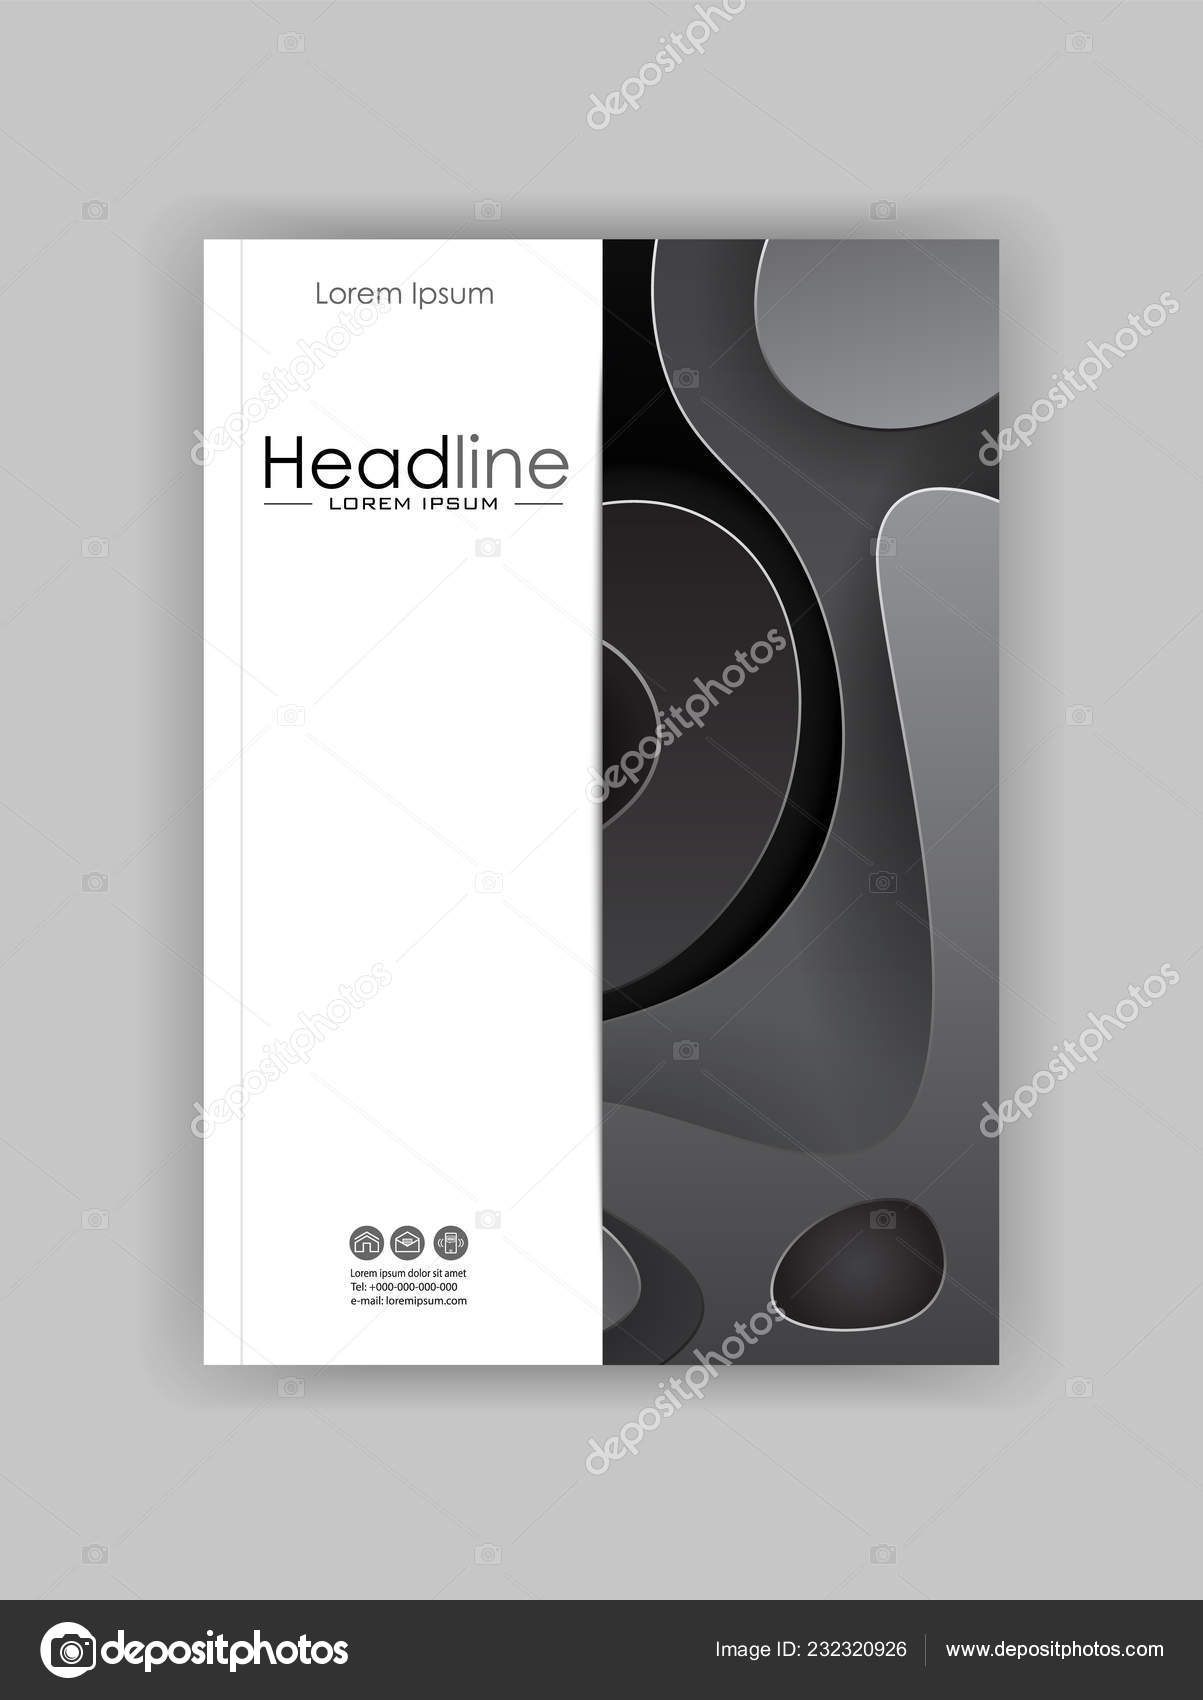 Minimalist Book Covers Book Cover Design Template Minimalist Design Good Journals Conference Banner Stock Vector C Luyali 232320926